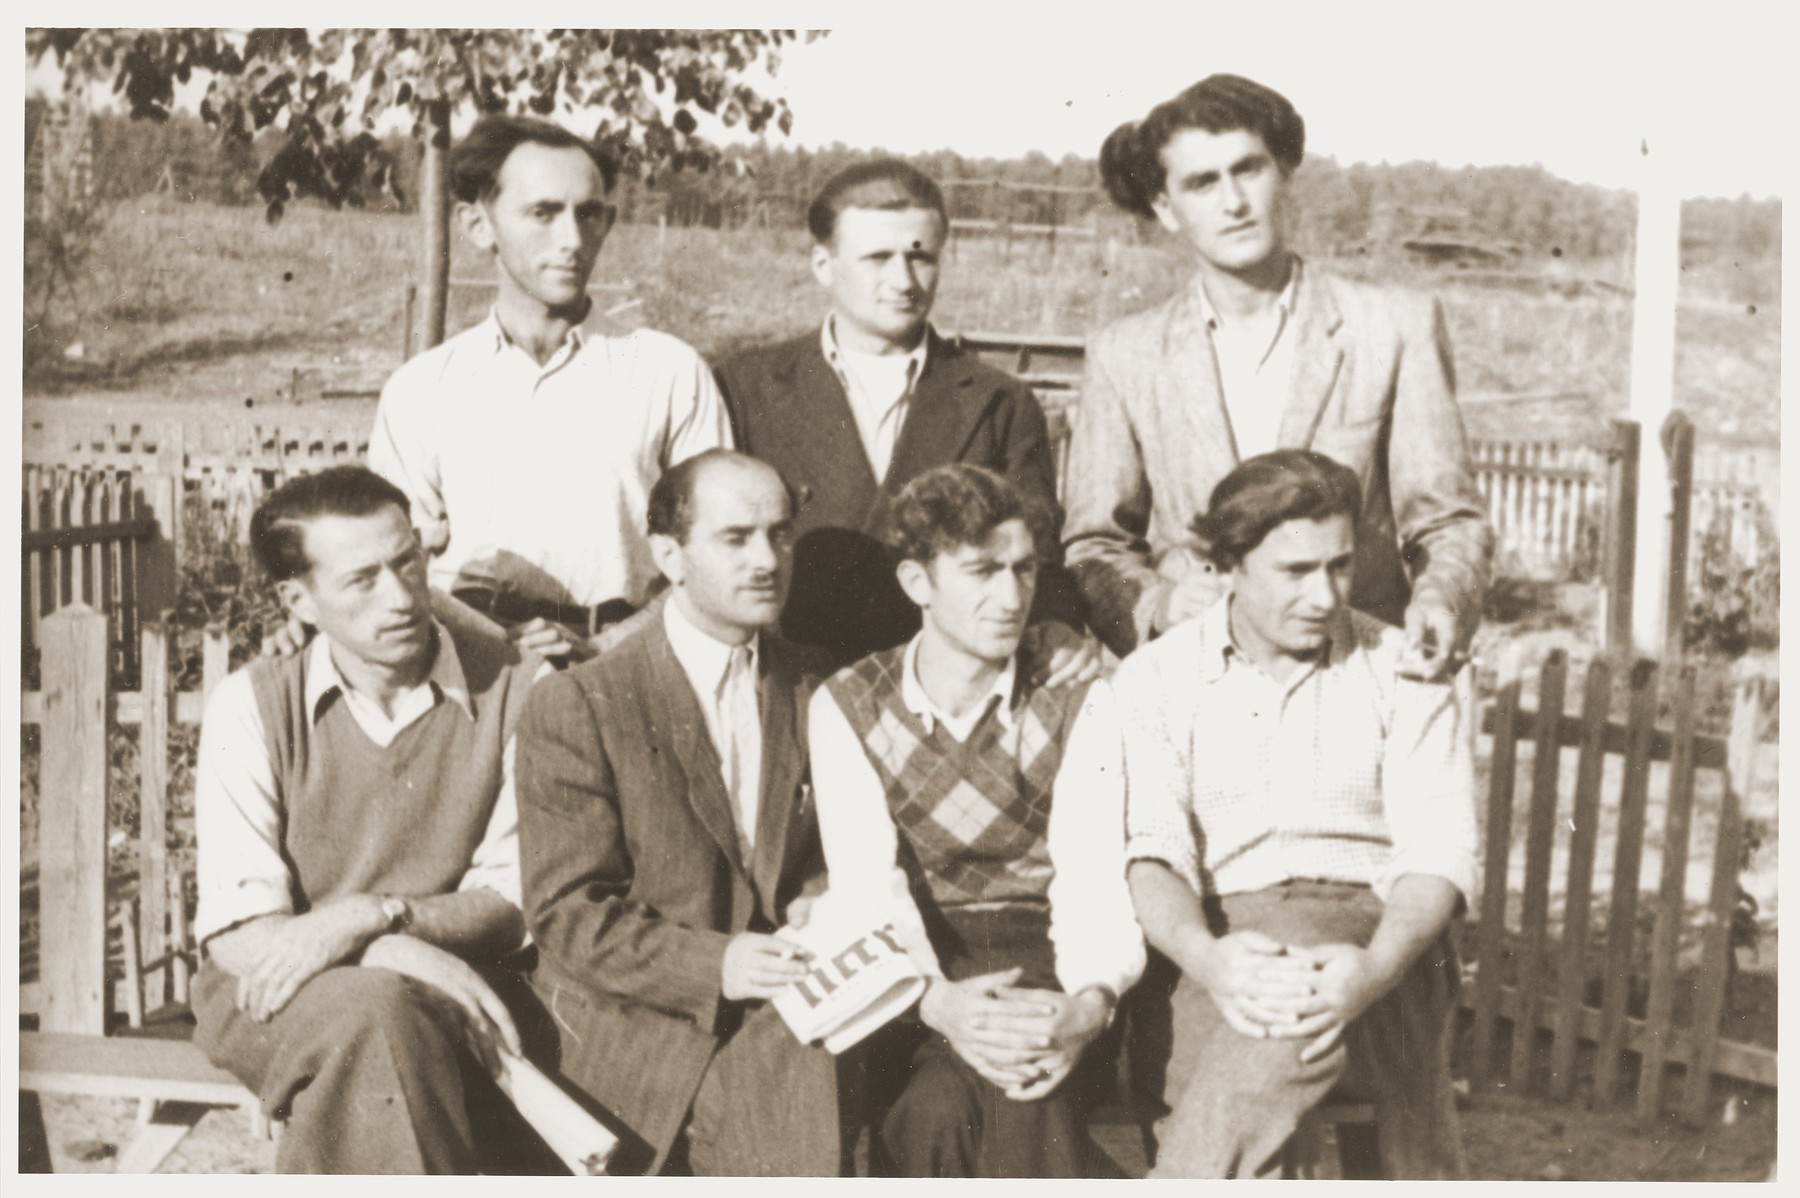 Group portrait of members of the Kibbutz Nili hachshara (Zionist collective) in Pleikershof, Germany.    Among those pictured is Noach Miedzinski (front row, second from the left).